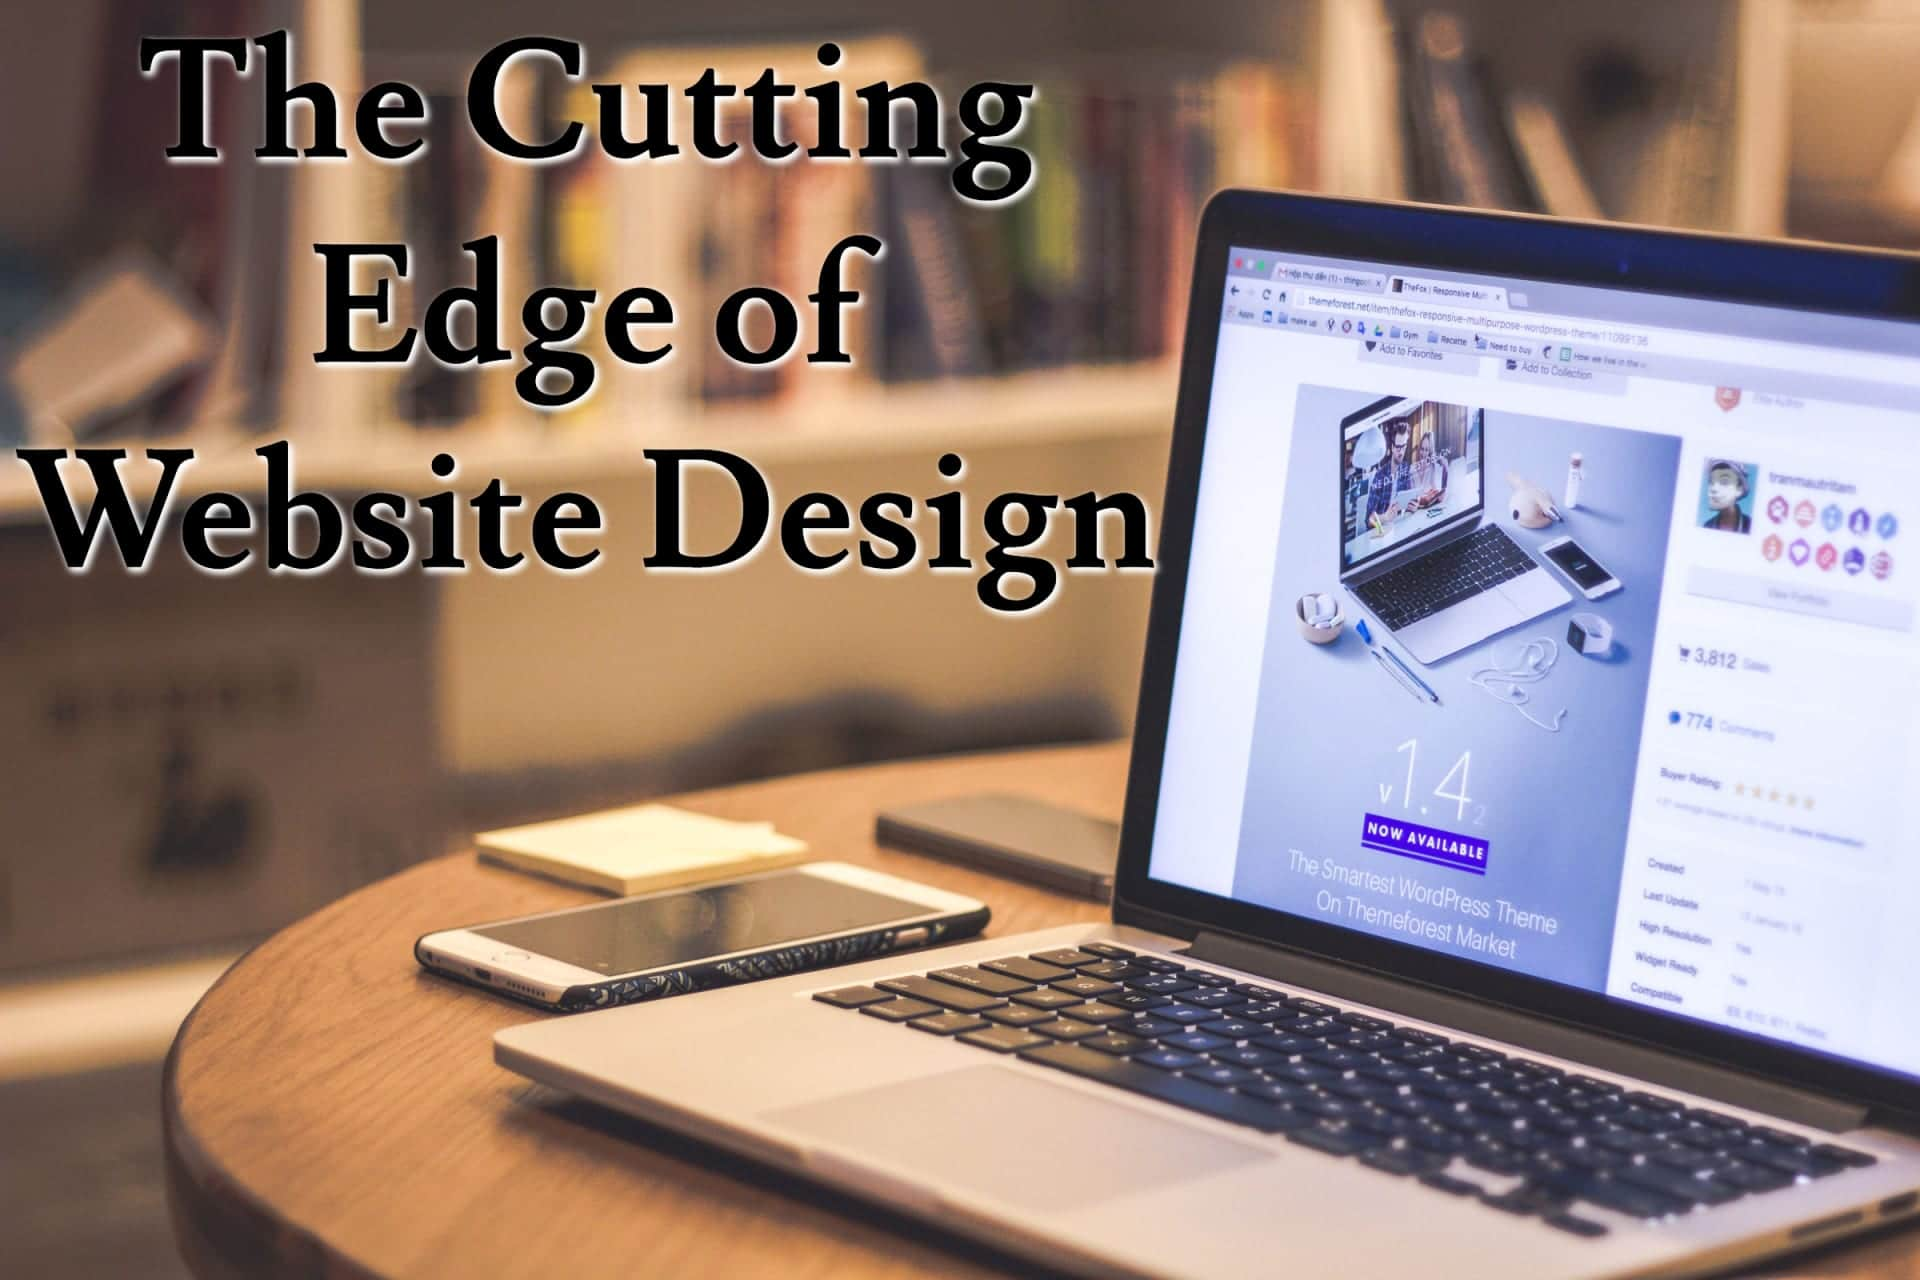 The Cutting Edge of Website Design